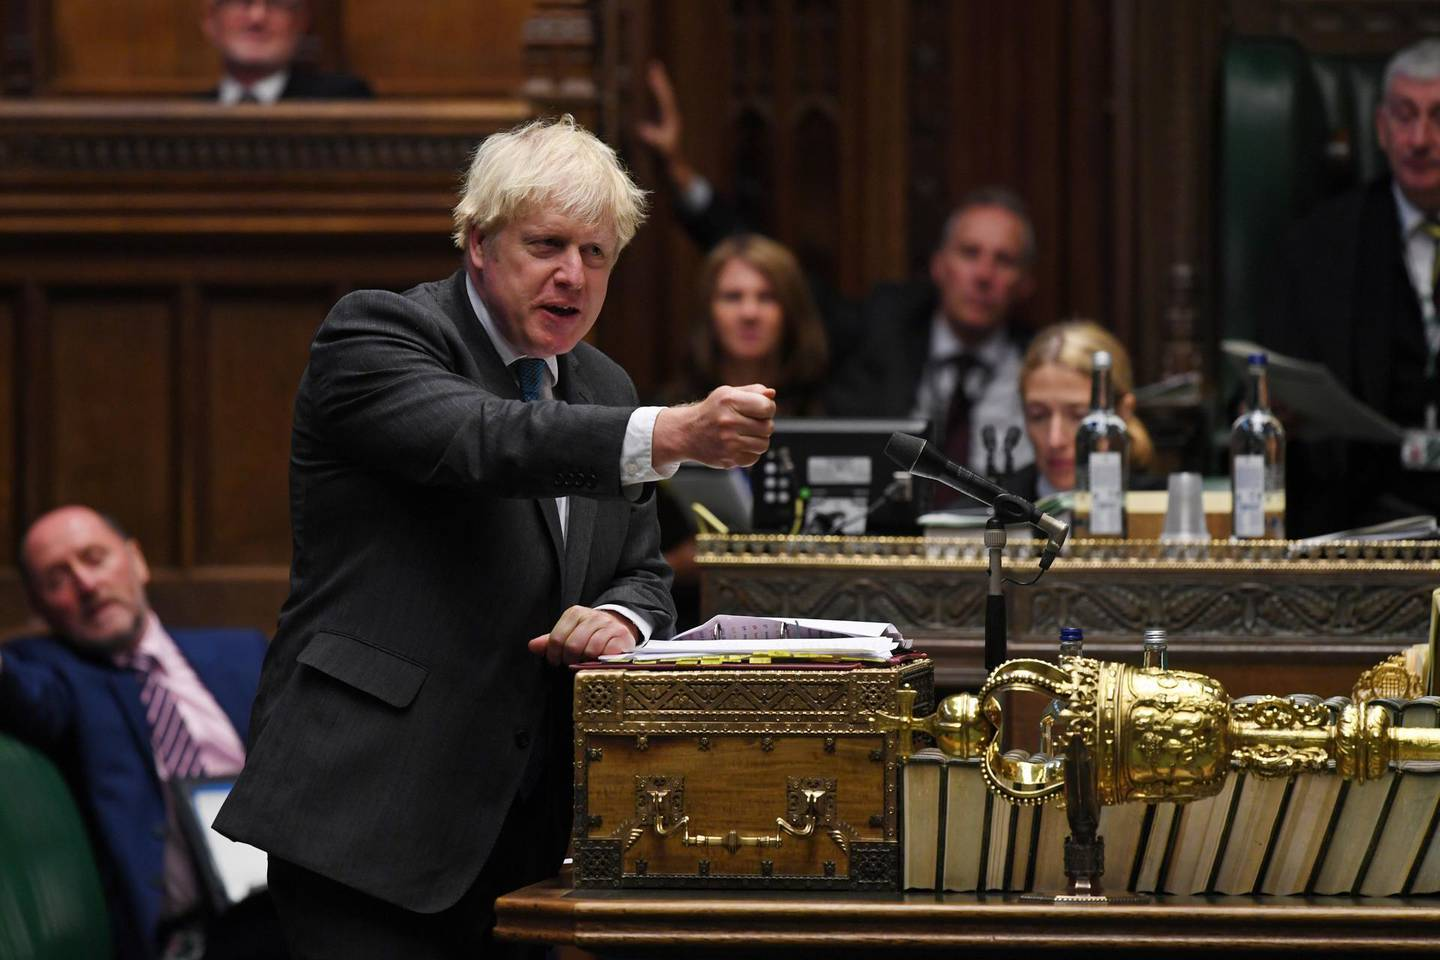 Britain's Prime Minister Boris Johnson speaks during the weekly question time debate in Parliament in London, Britain September 16, 2020. UK Parliament/Jessica Taylor/Handout via REUTERS THIS IMAGE HAS BEEN SUPPLIED BY A THIRD PARTY. MANDATORY CREDIT. IMAGE MUST NOT BE ALTERED